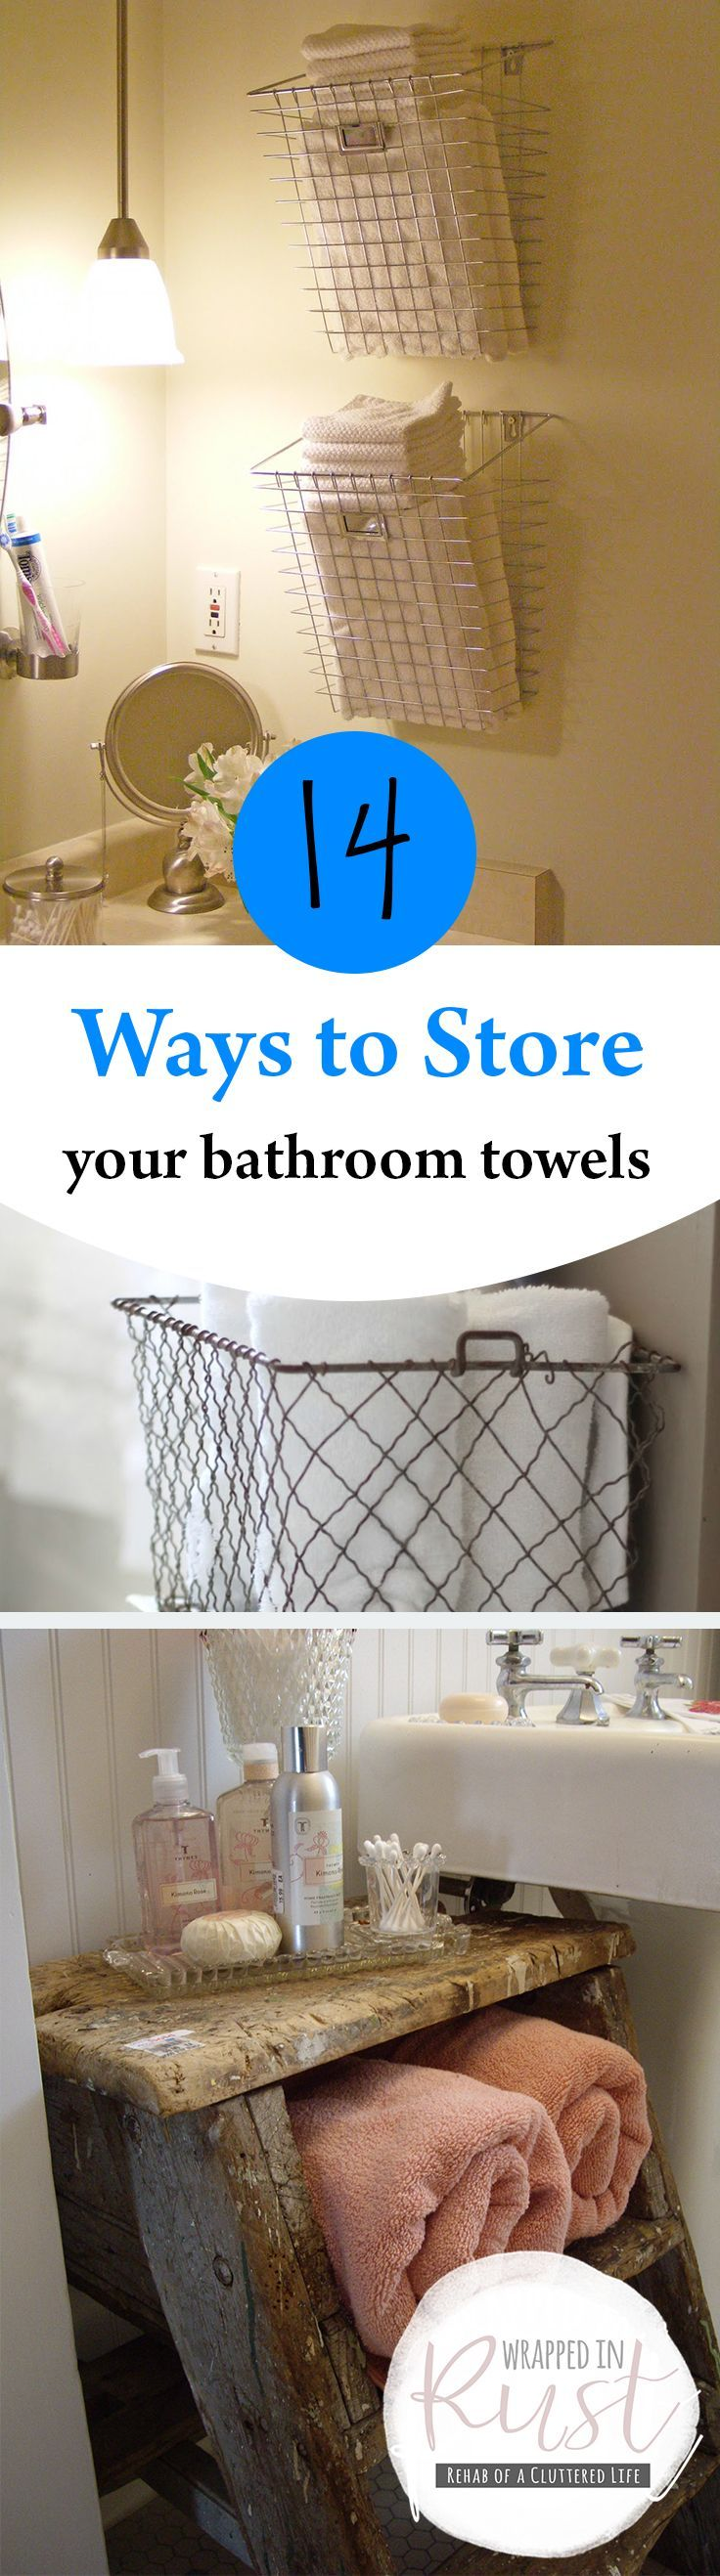 Best 25+ Decorative Bathroom Towels Ideas On Pinterest | Towel Display,  Bathroom Towels And Decorative Towels